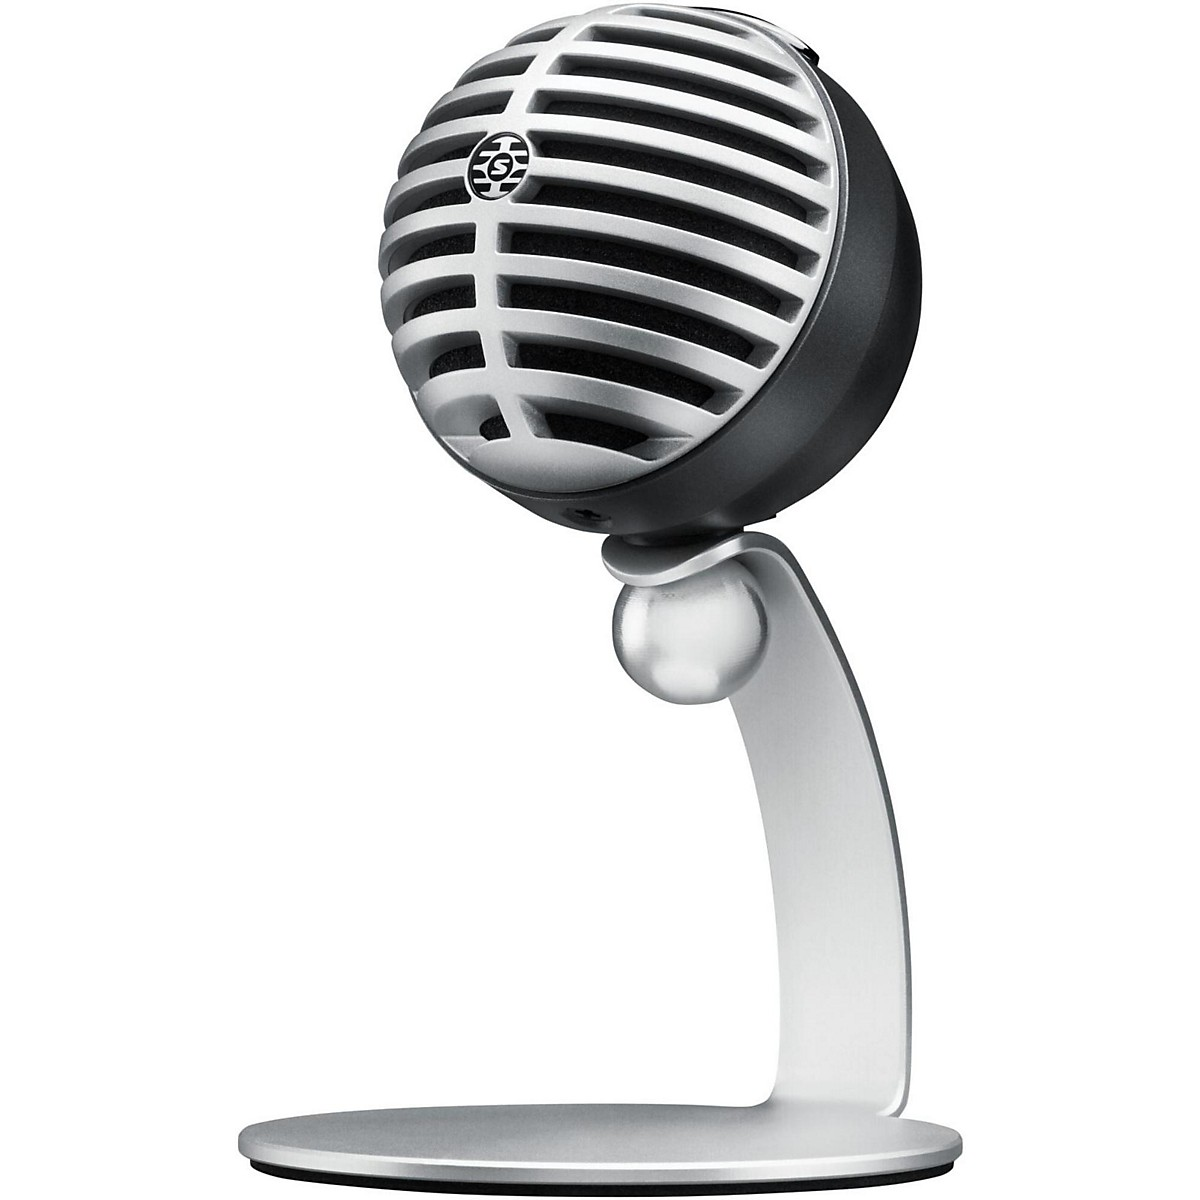 Shure Motiv MV5 Digital Condenser Microphone with USB and Lightning Cables Included